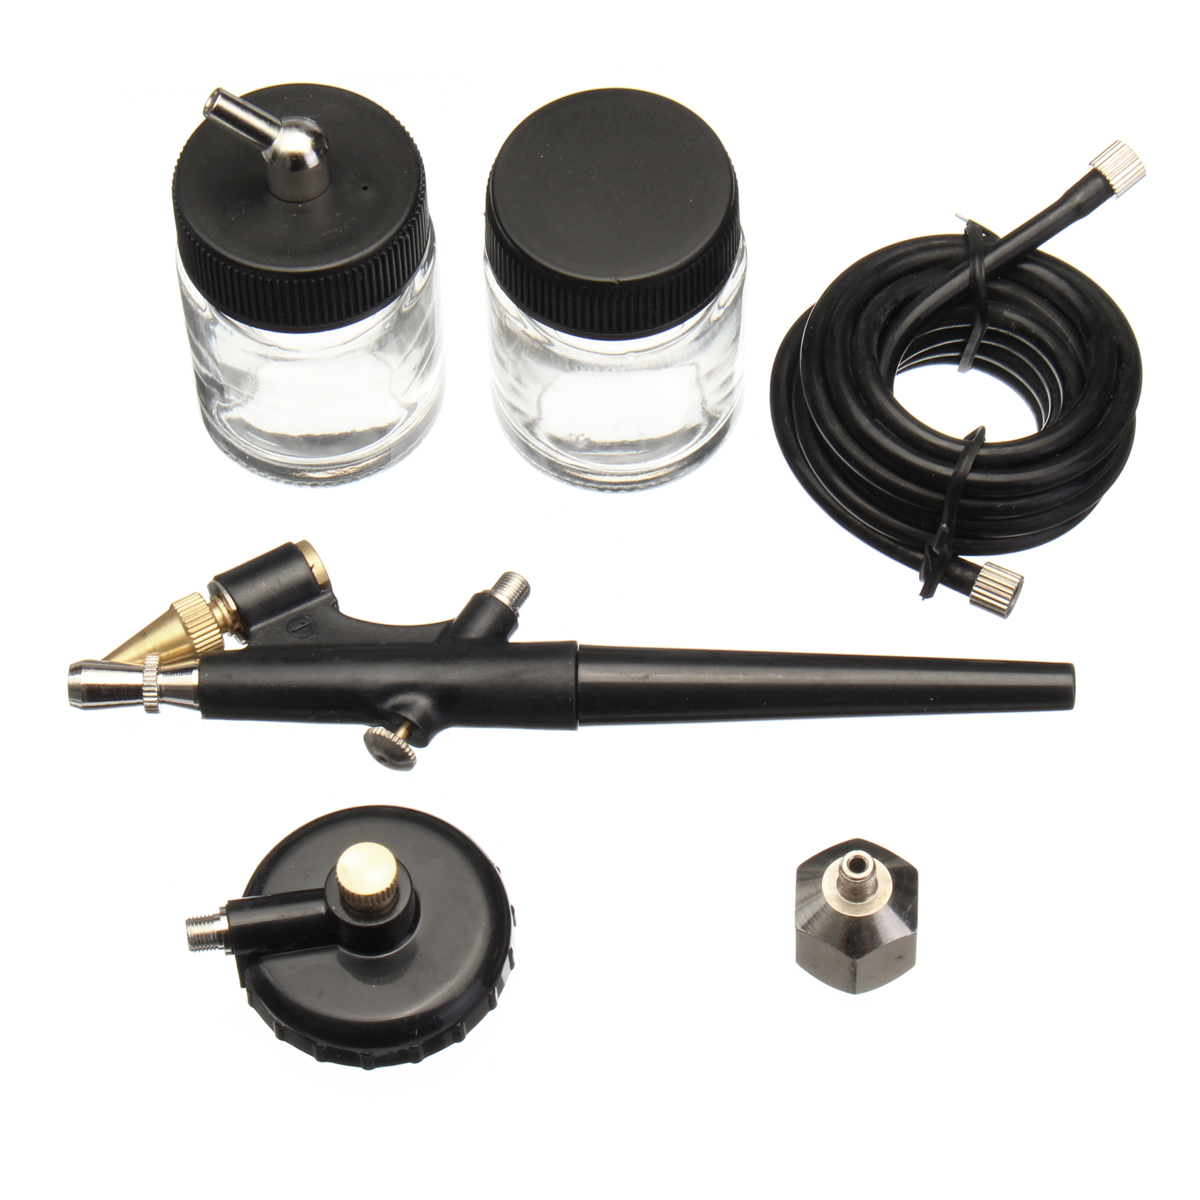 Mini Airbrush Spray Kit 22cc Ink Cup Hose Airbrush Pain